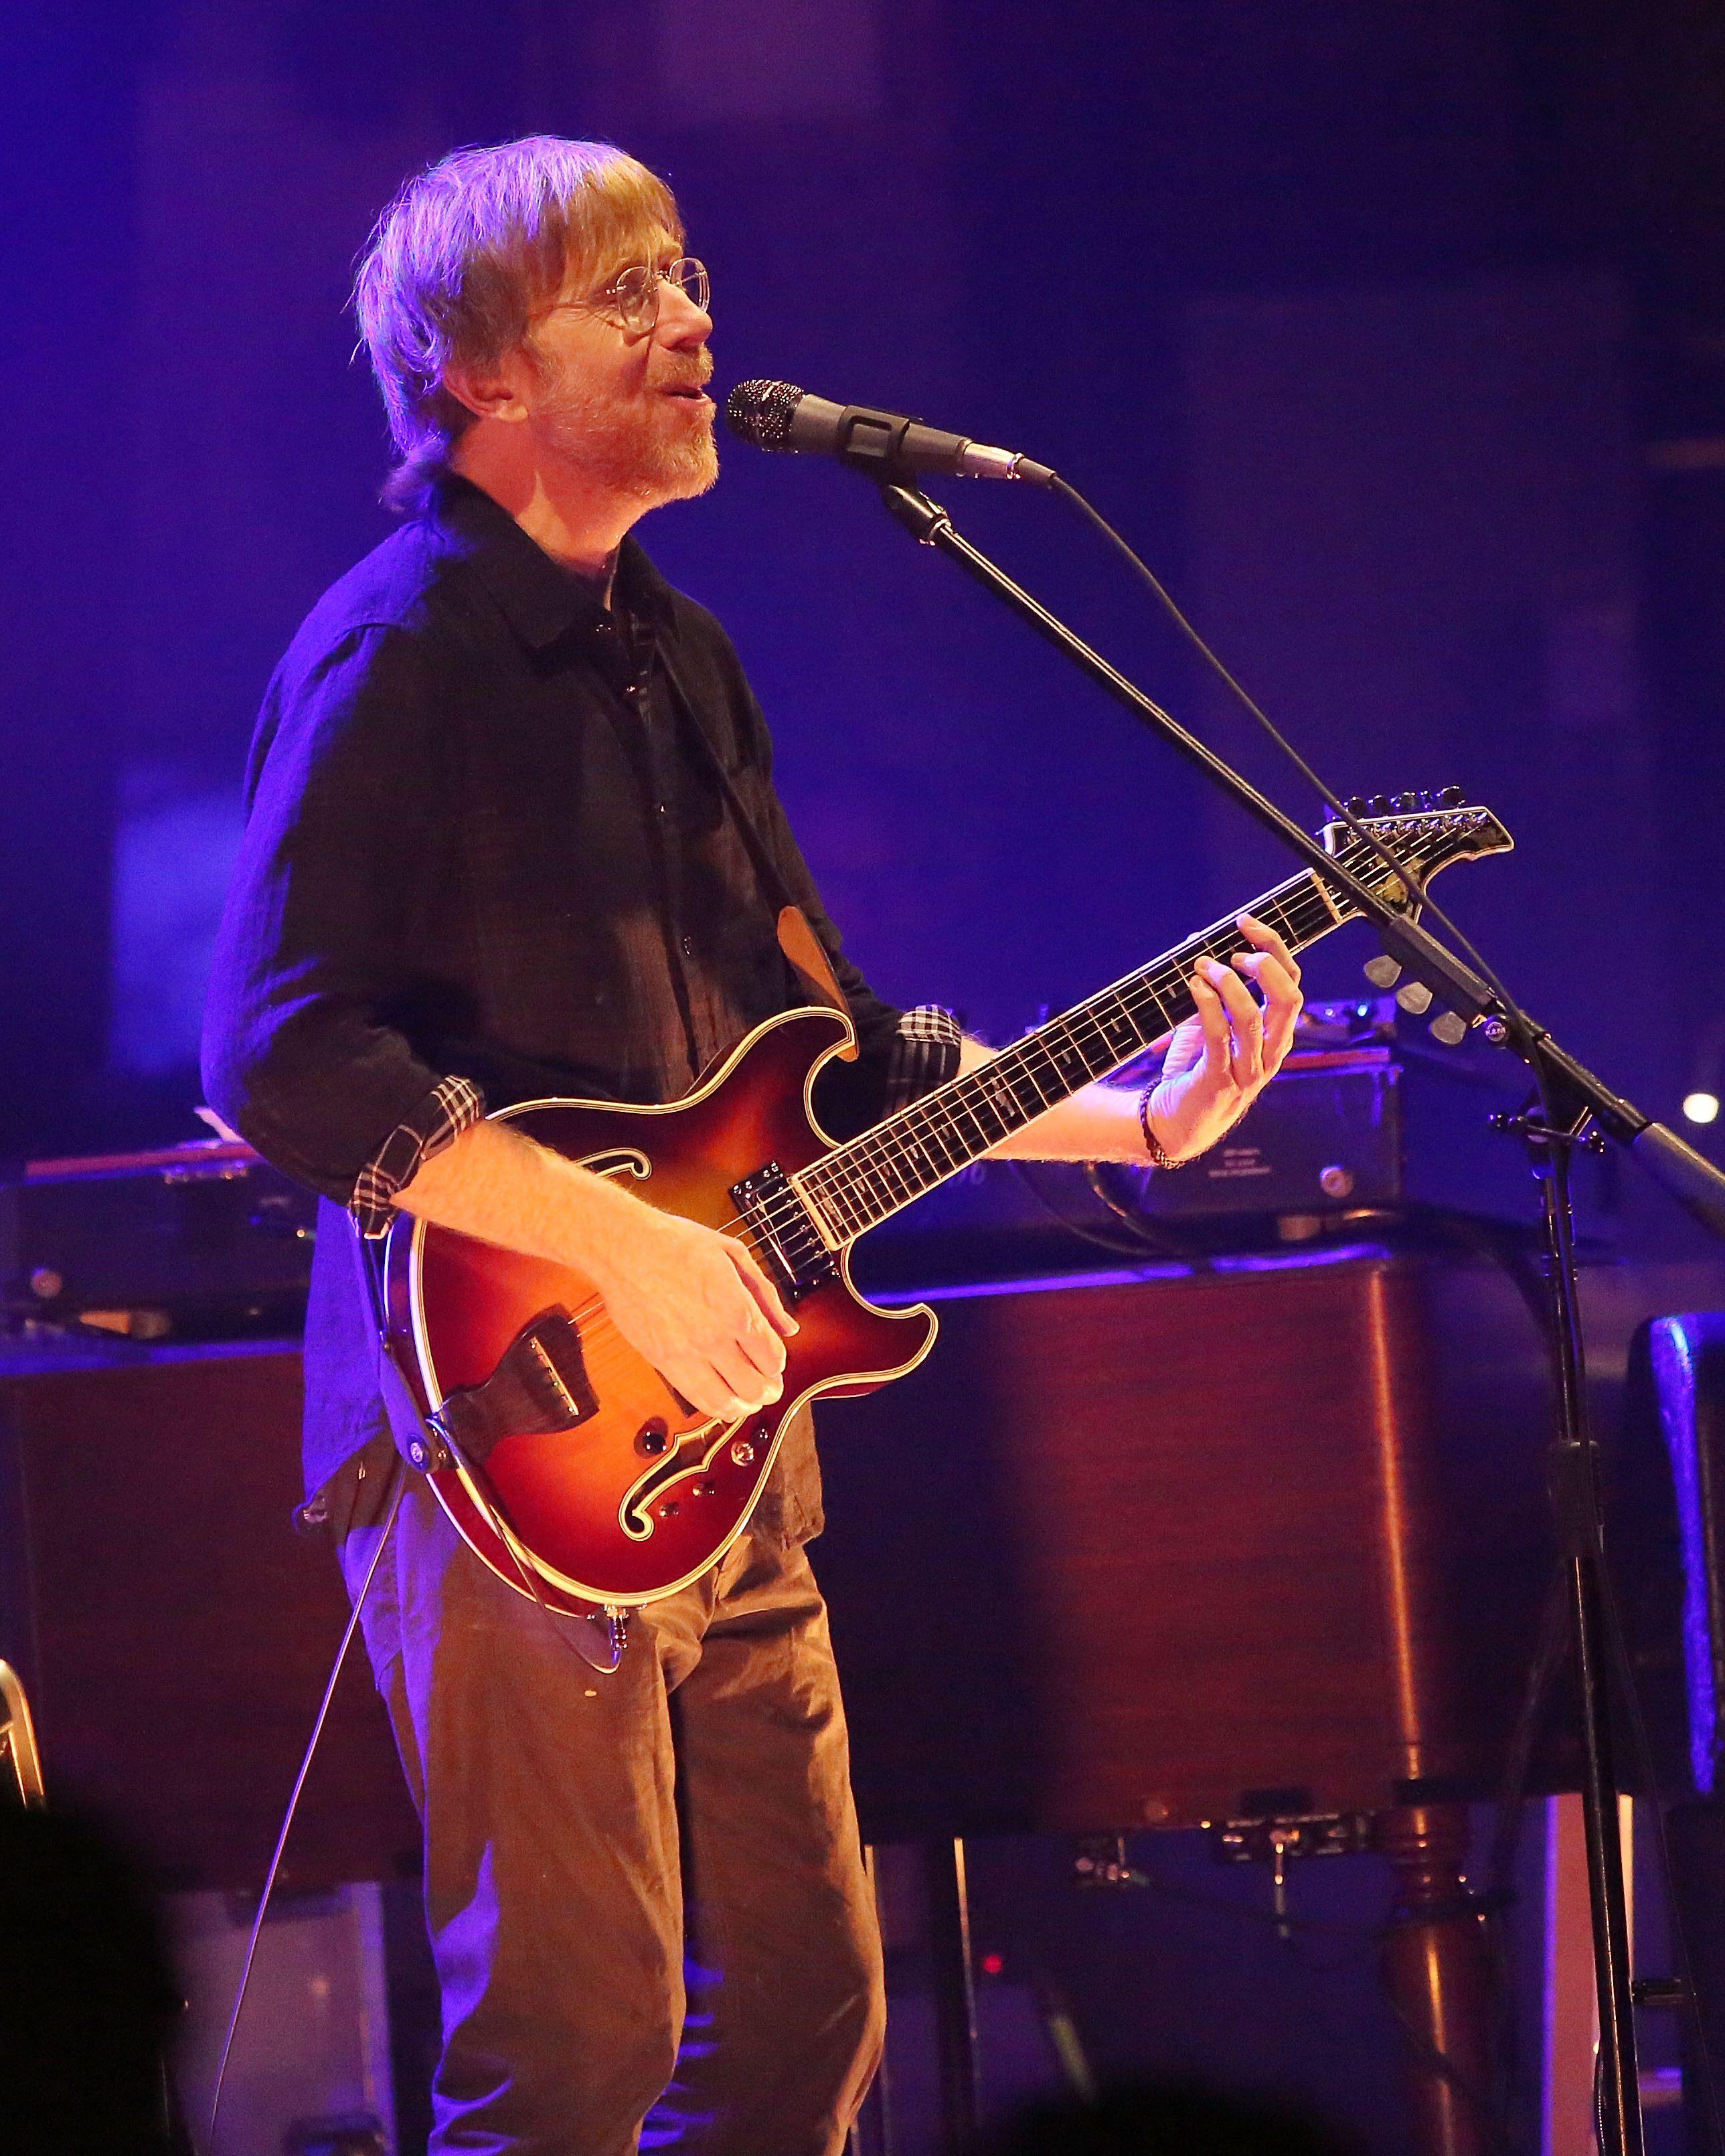 Trey Anastasio performs at Beacon Theatre on December 11, 2014 in New York City.